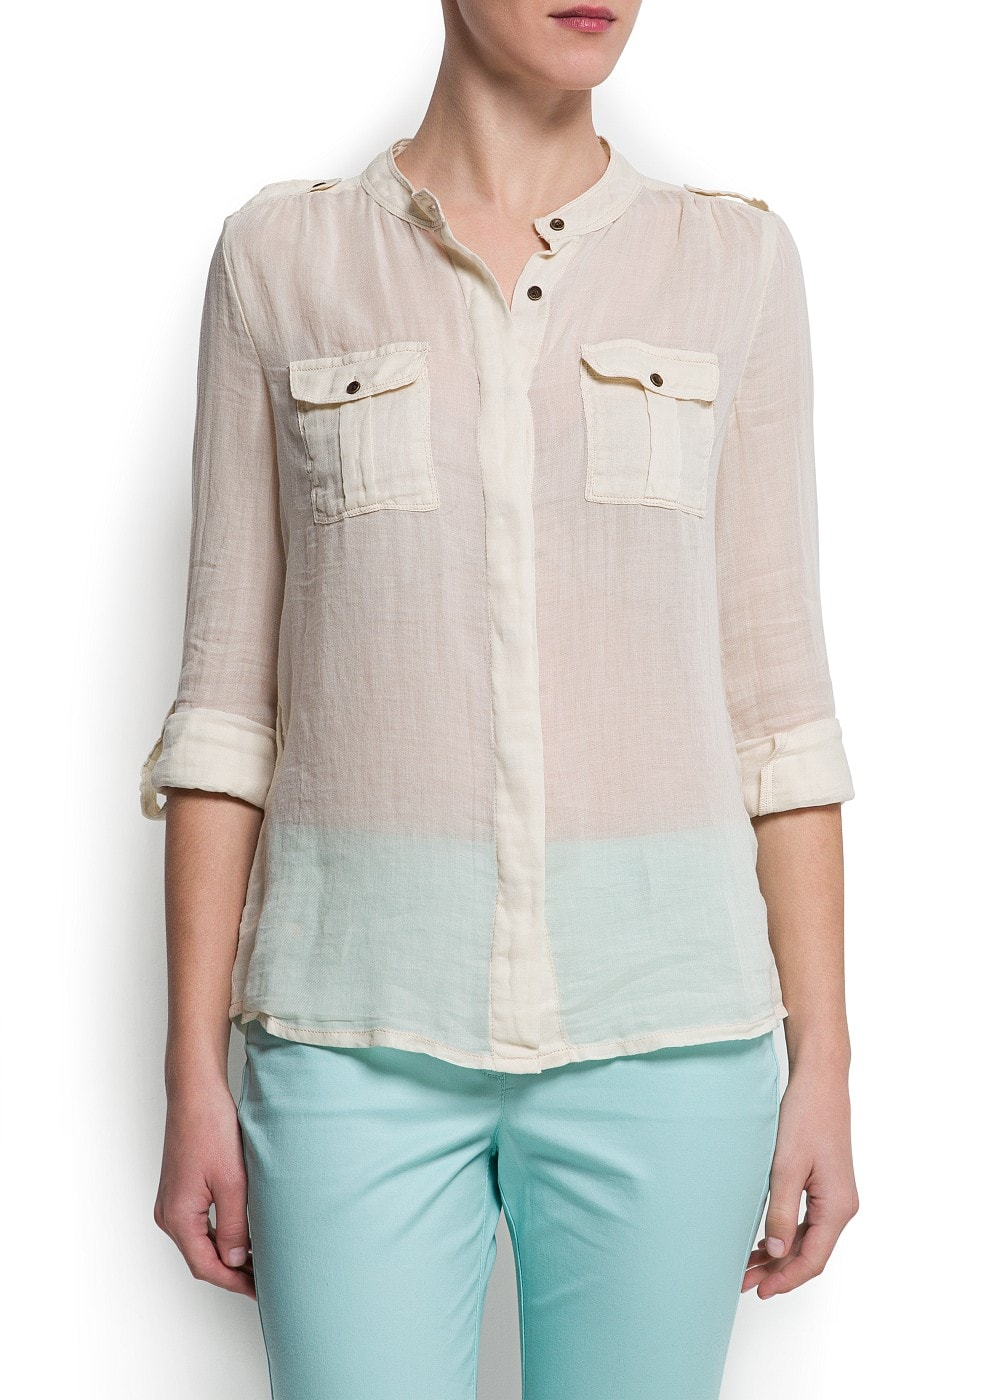 Light cotton blouse